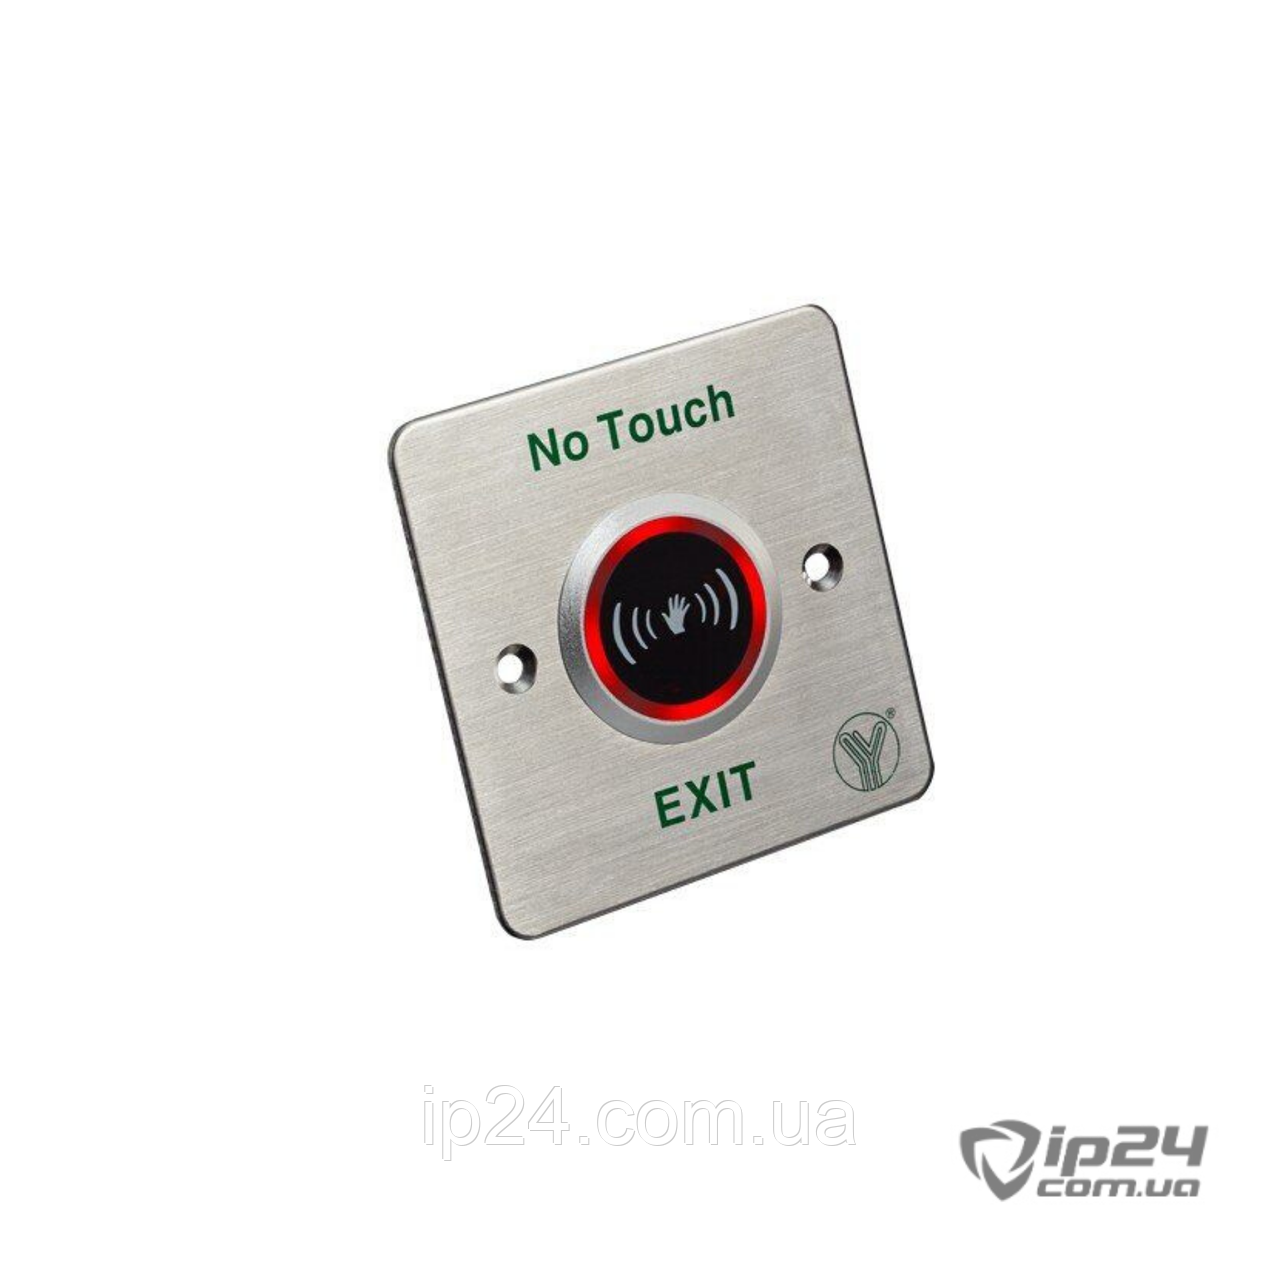 Кнопка выхода ISK-841C No Touch